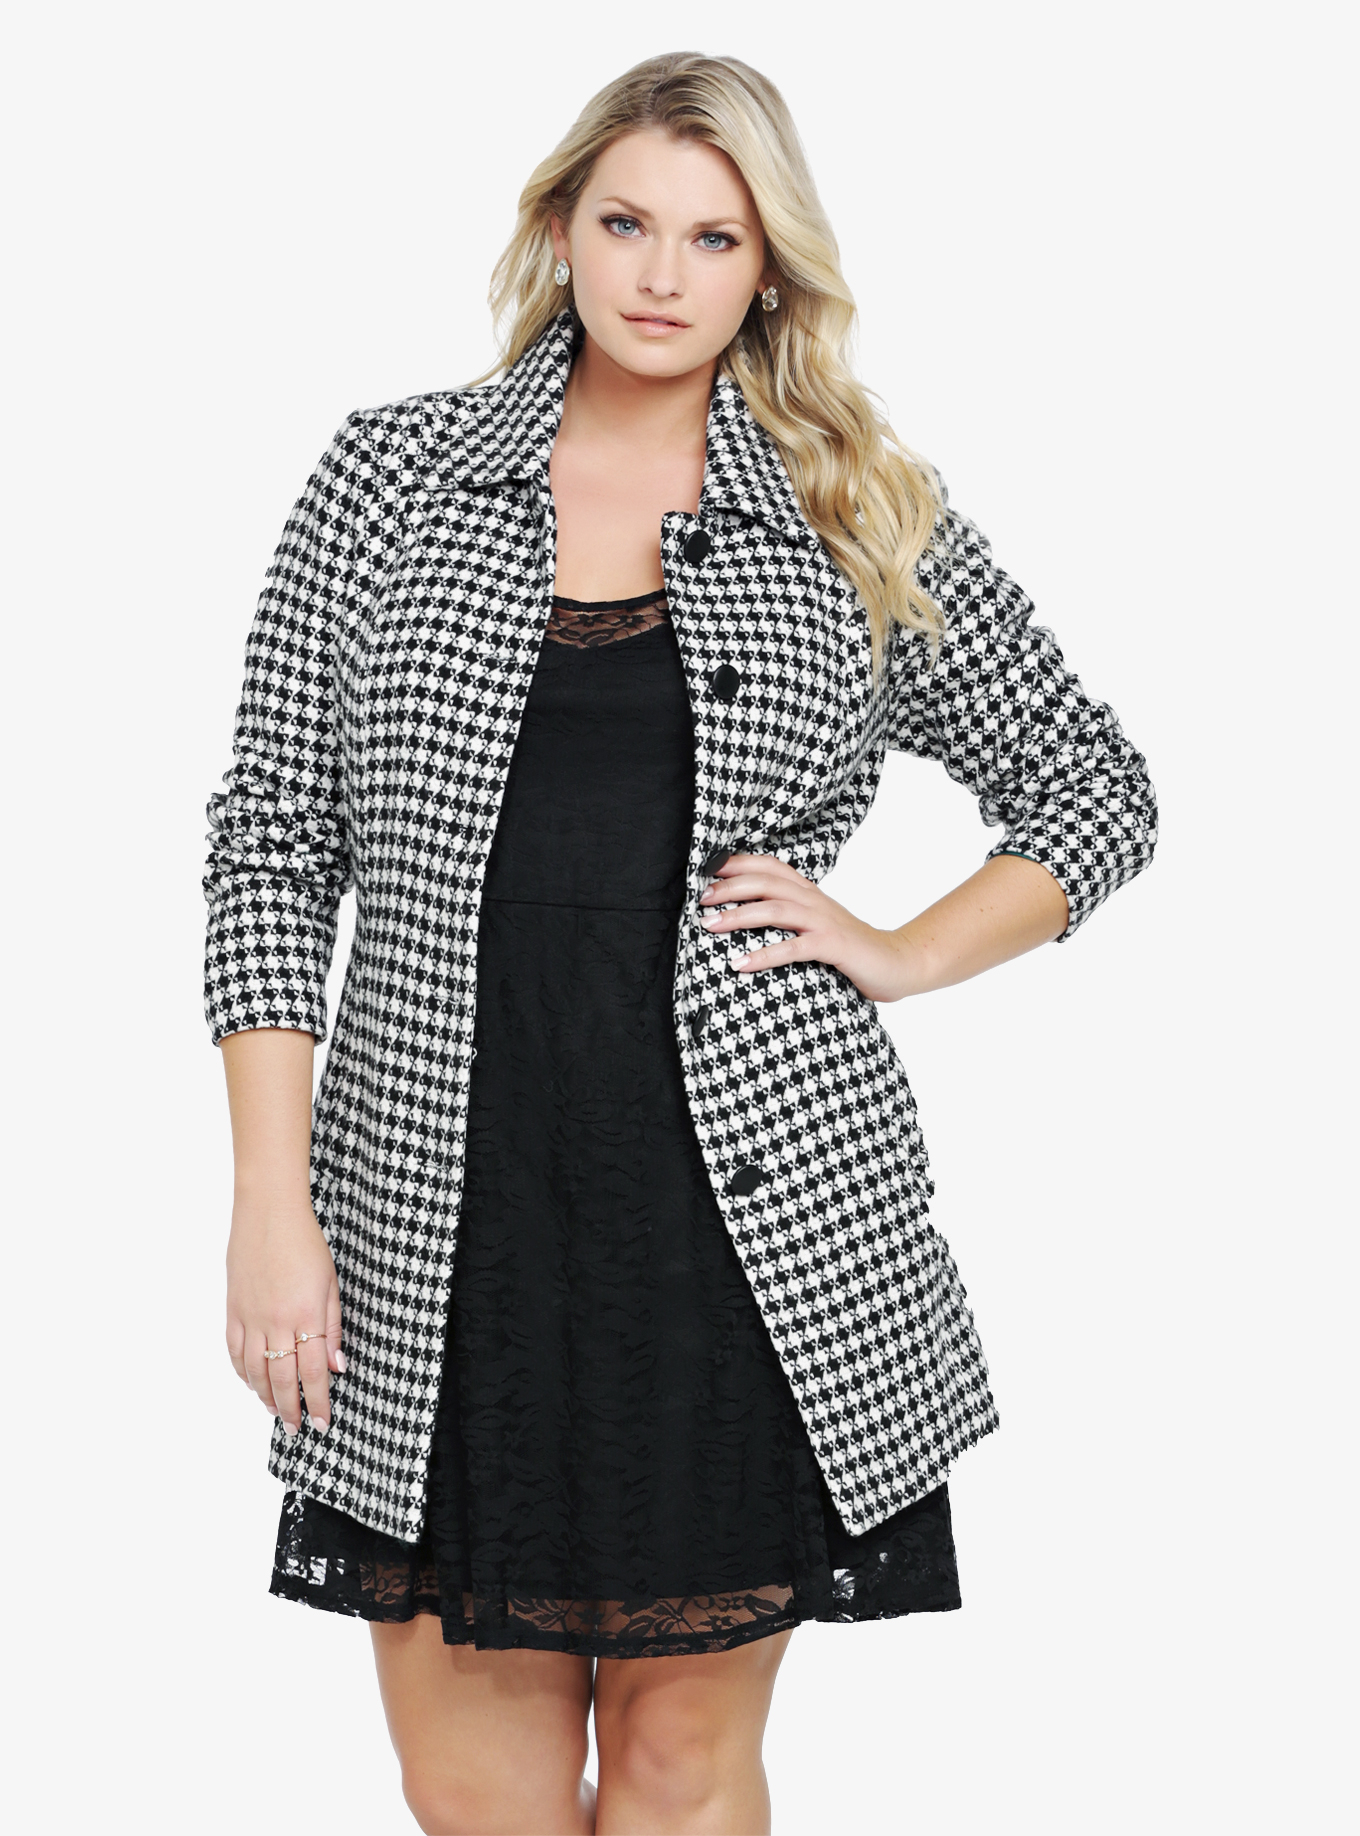 Best prices on Plus size spring jackets, Plus Size in Women's Jackets & Coats online. Visit Bizrate to find the best deals on top brands. Read reviews on Clothing .